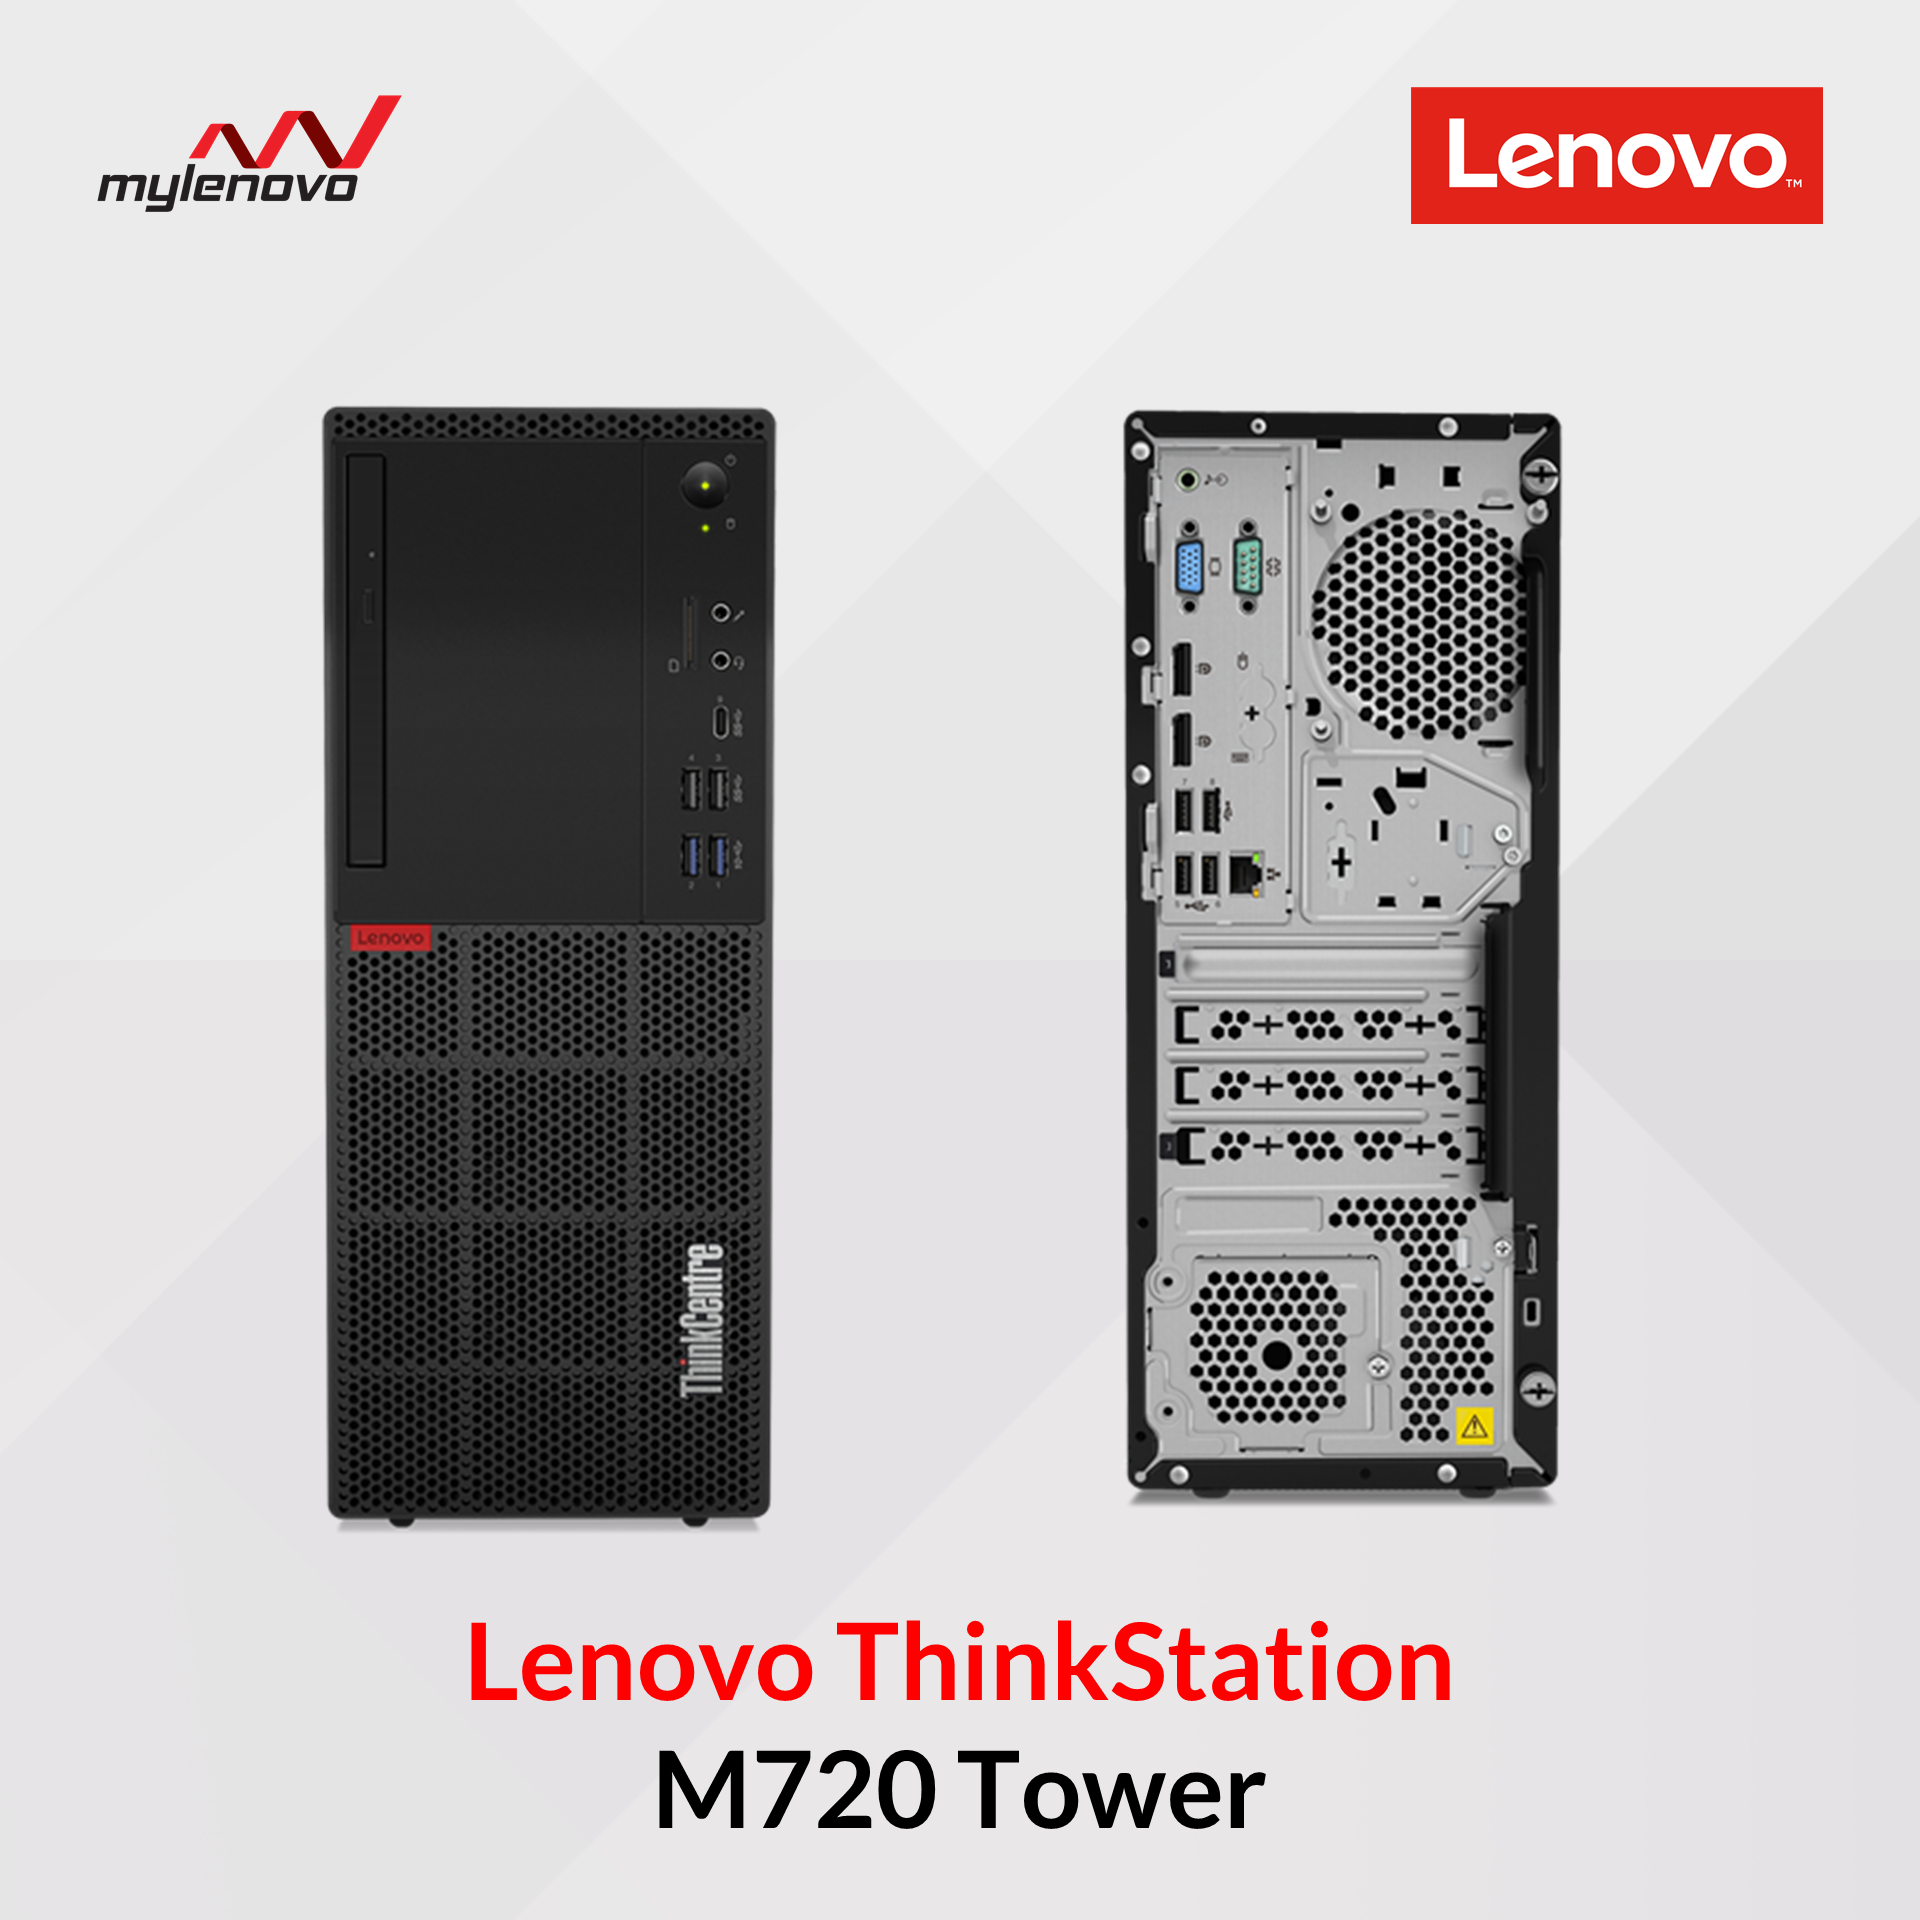 Lenovo ThinkCentre M720 Tower (i5)